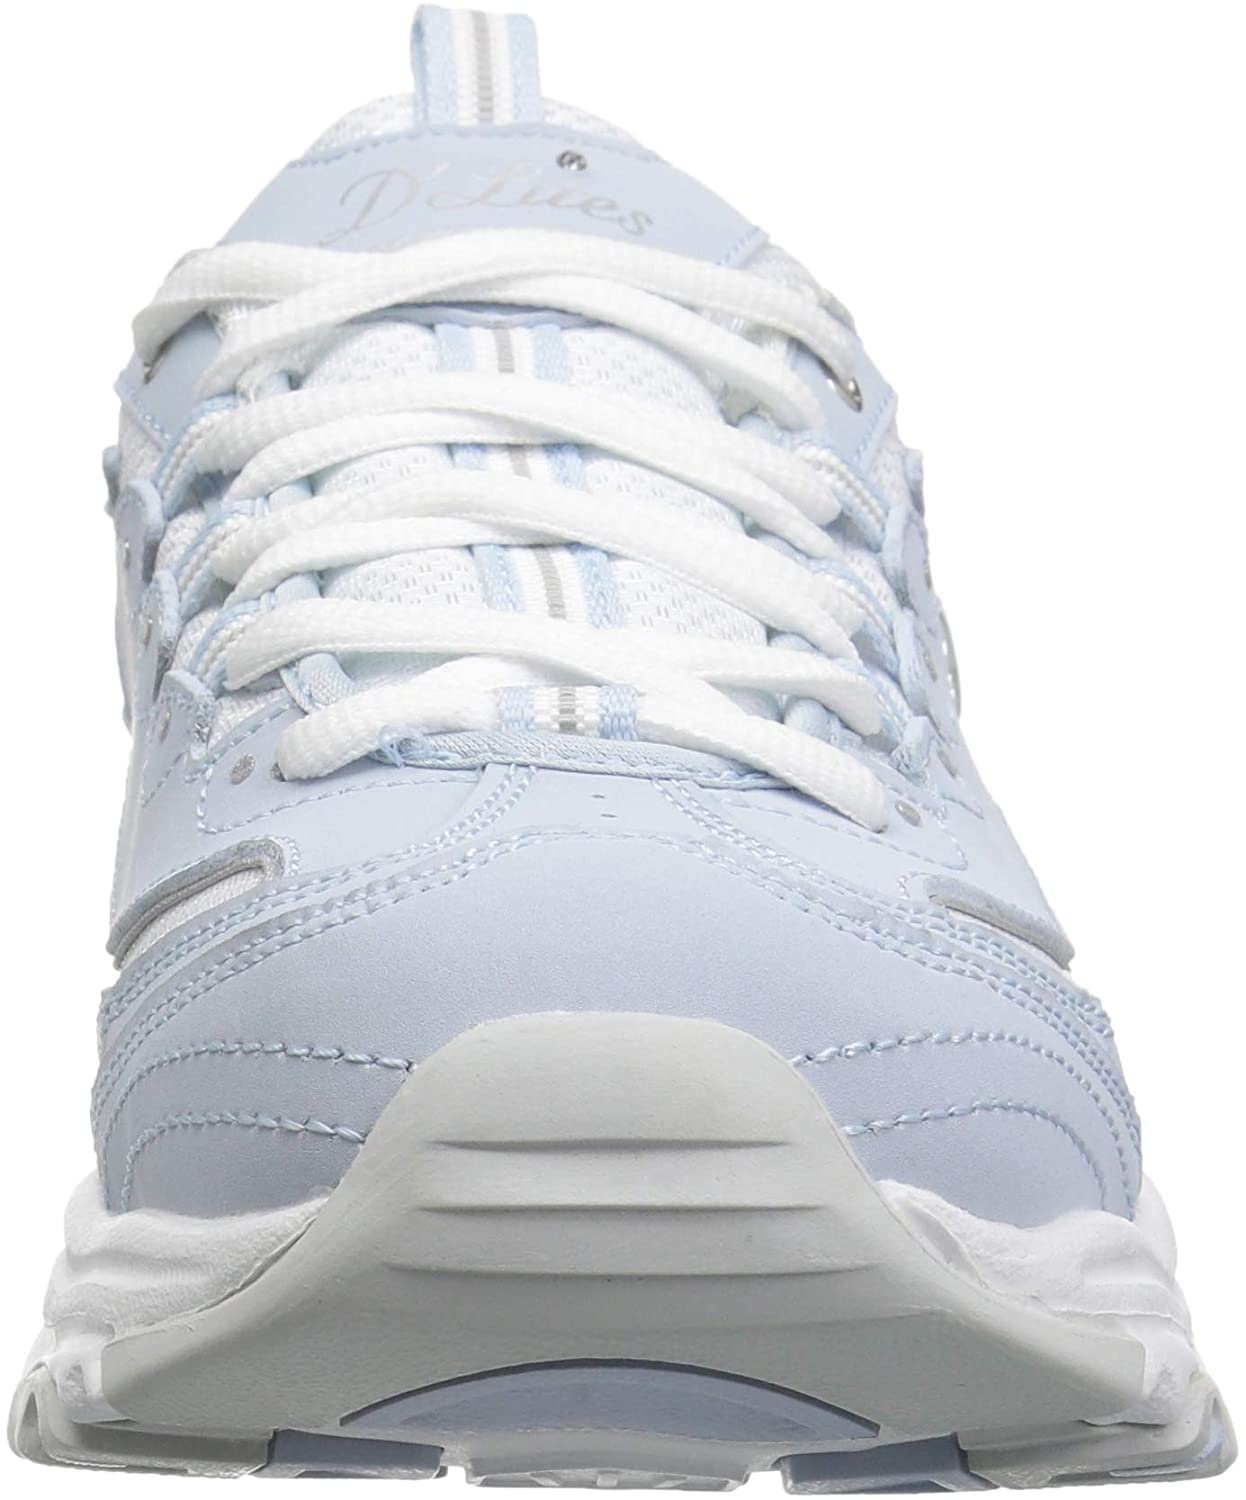 Skechers-D-039-Lites-Women-039-s-Casual-Lightweight-Fashion-Sneakers-Athletic-Shoes thumbnail 11